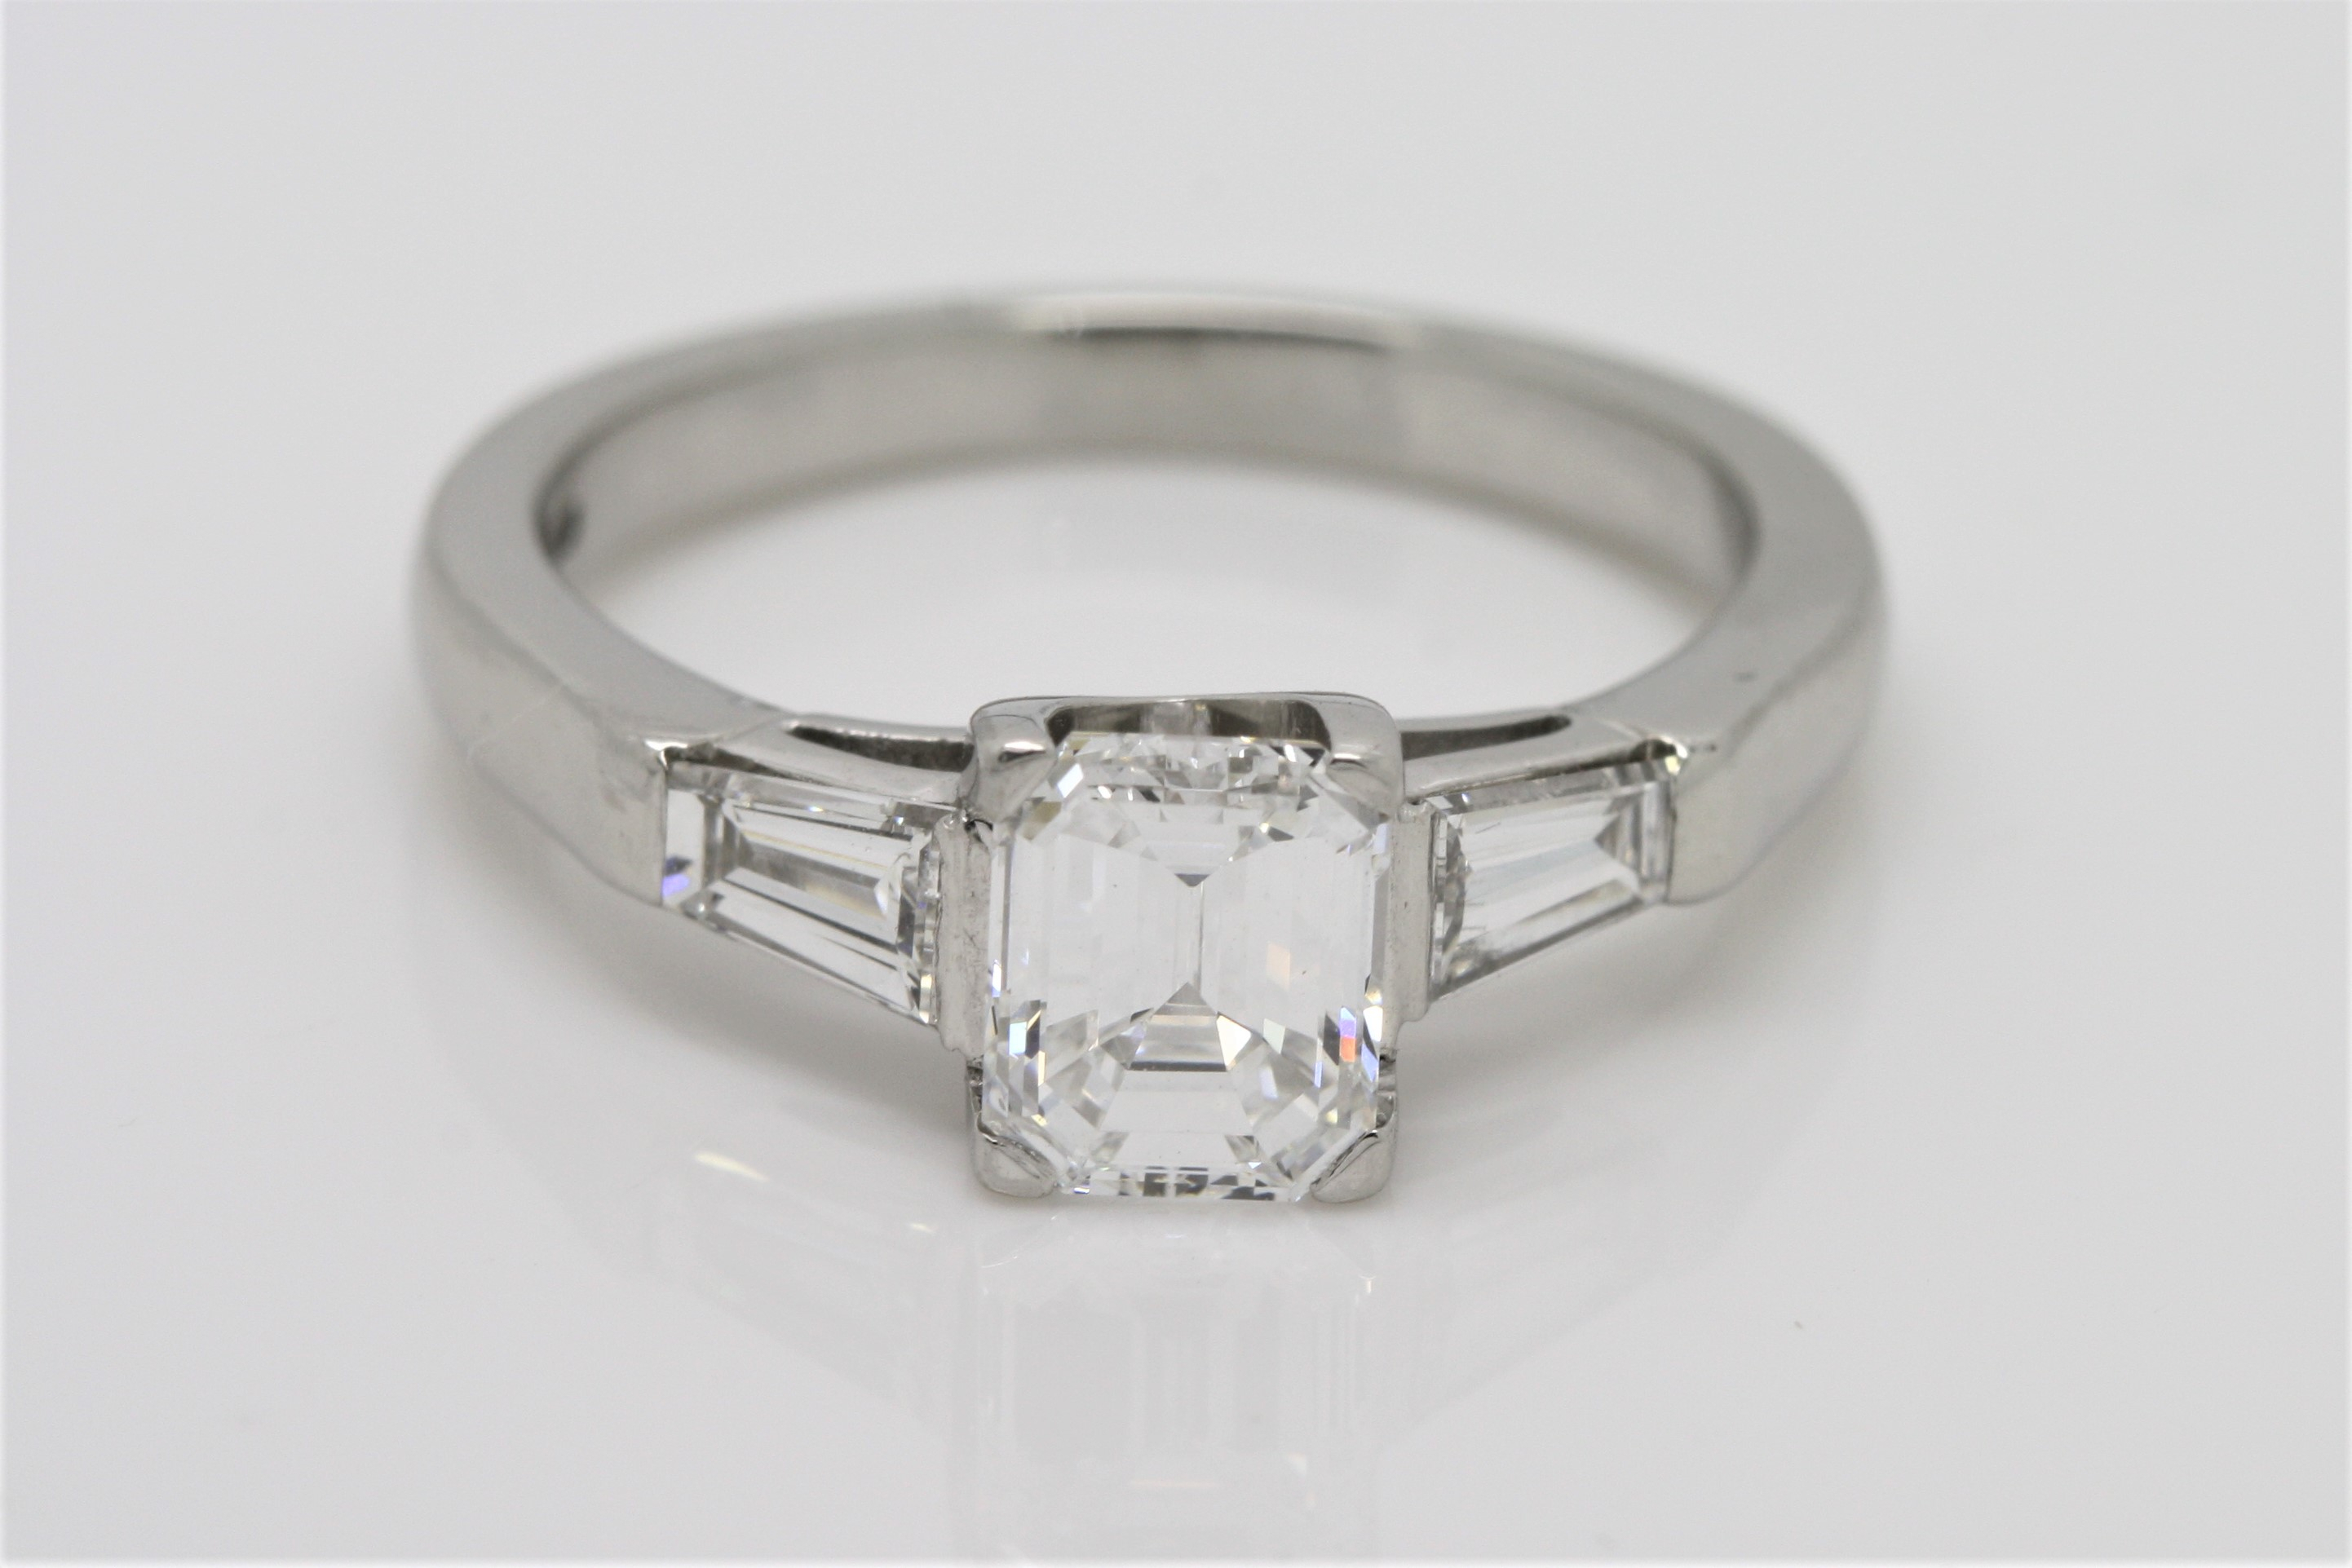 Emerald Cut Diamond Solitaire With Diamond Tapered Baguette Side Stones In Platinum Ring Inside Cushion Cut Engagement Rings With Tapered Baguette Side Stones (View 10 of 25)